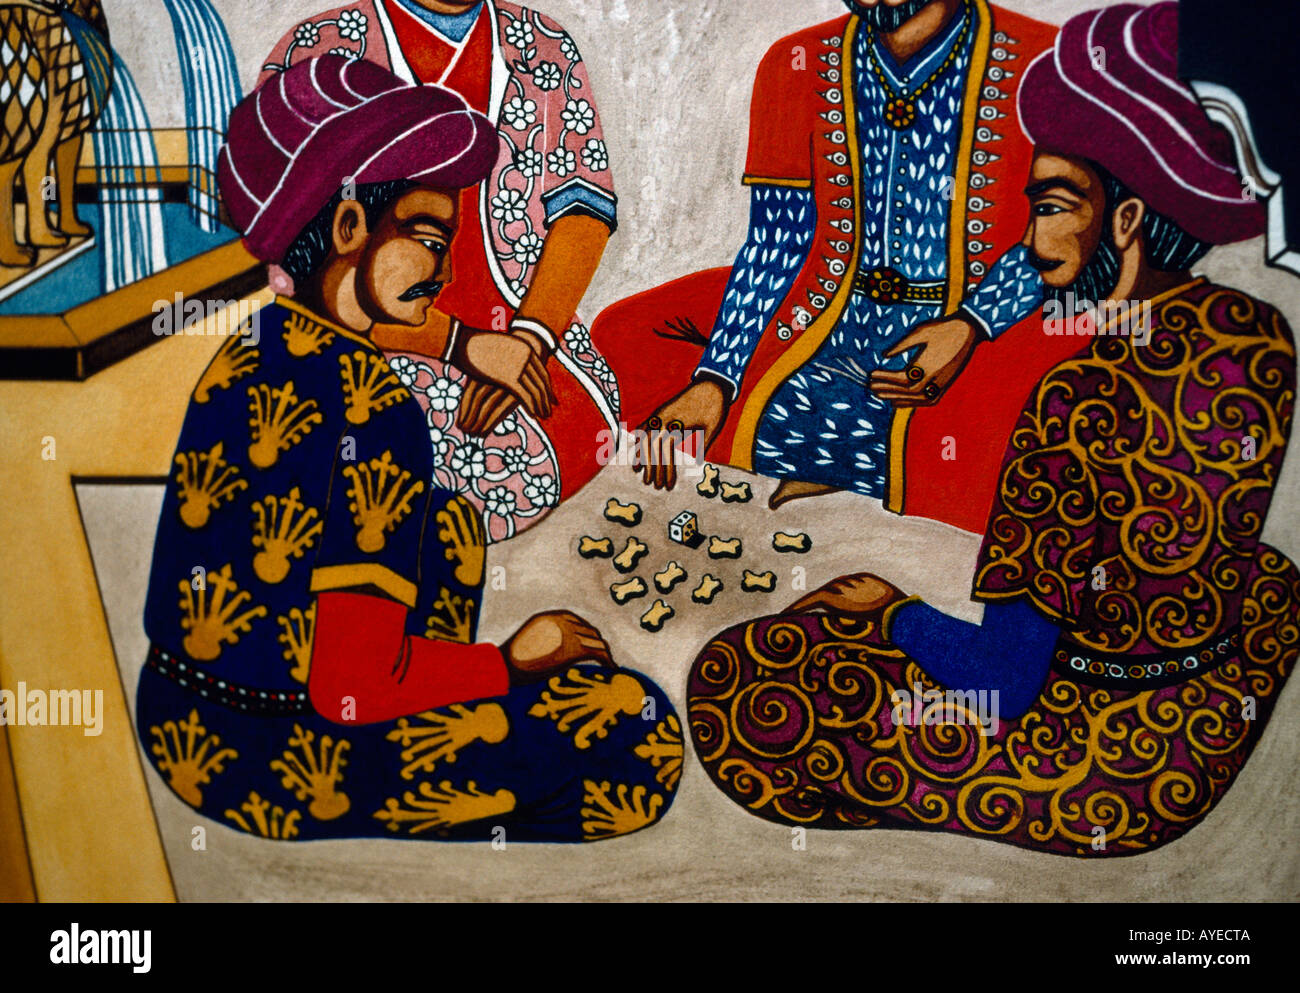 Bedouin Arab Stories From Eastern Tales - Stock Image